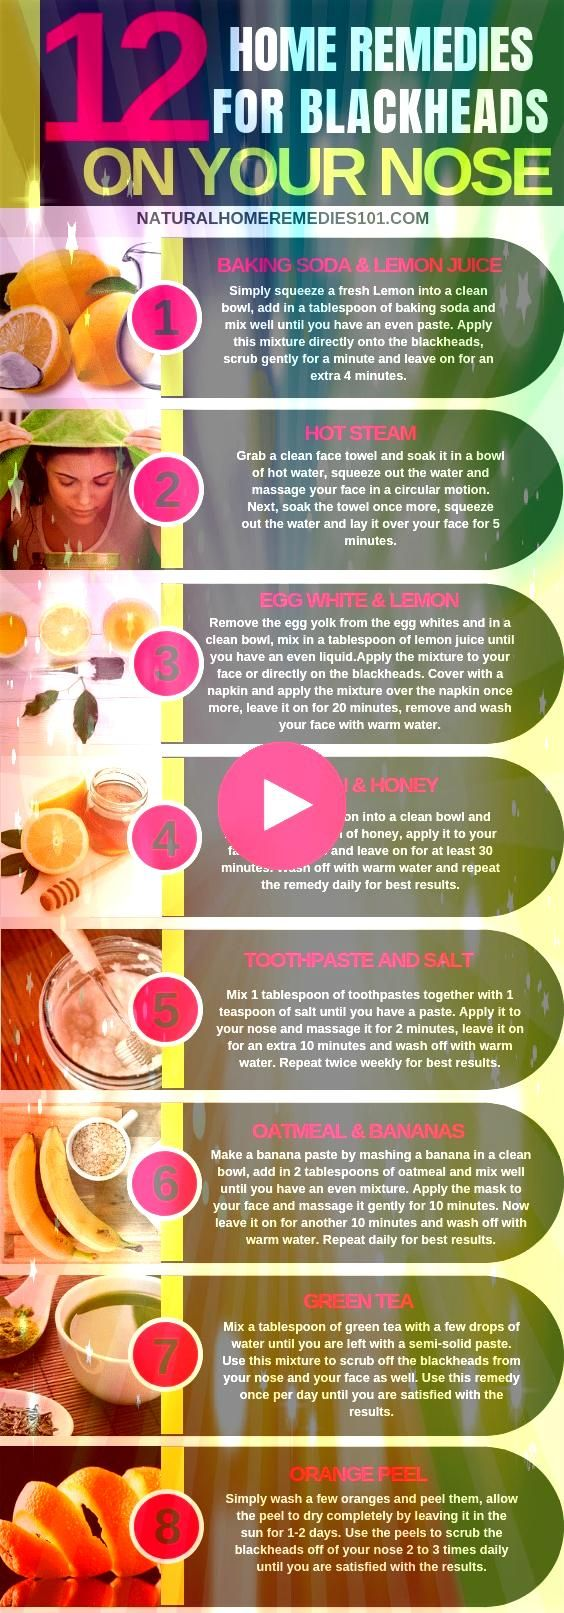 rid of Blackheads on the nose can be really frustrating for most women but dont worry below are 12 effective home remedies for blackheads on nose to help you clear yours...